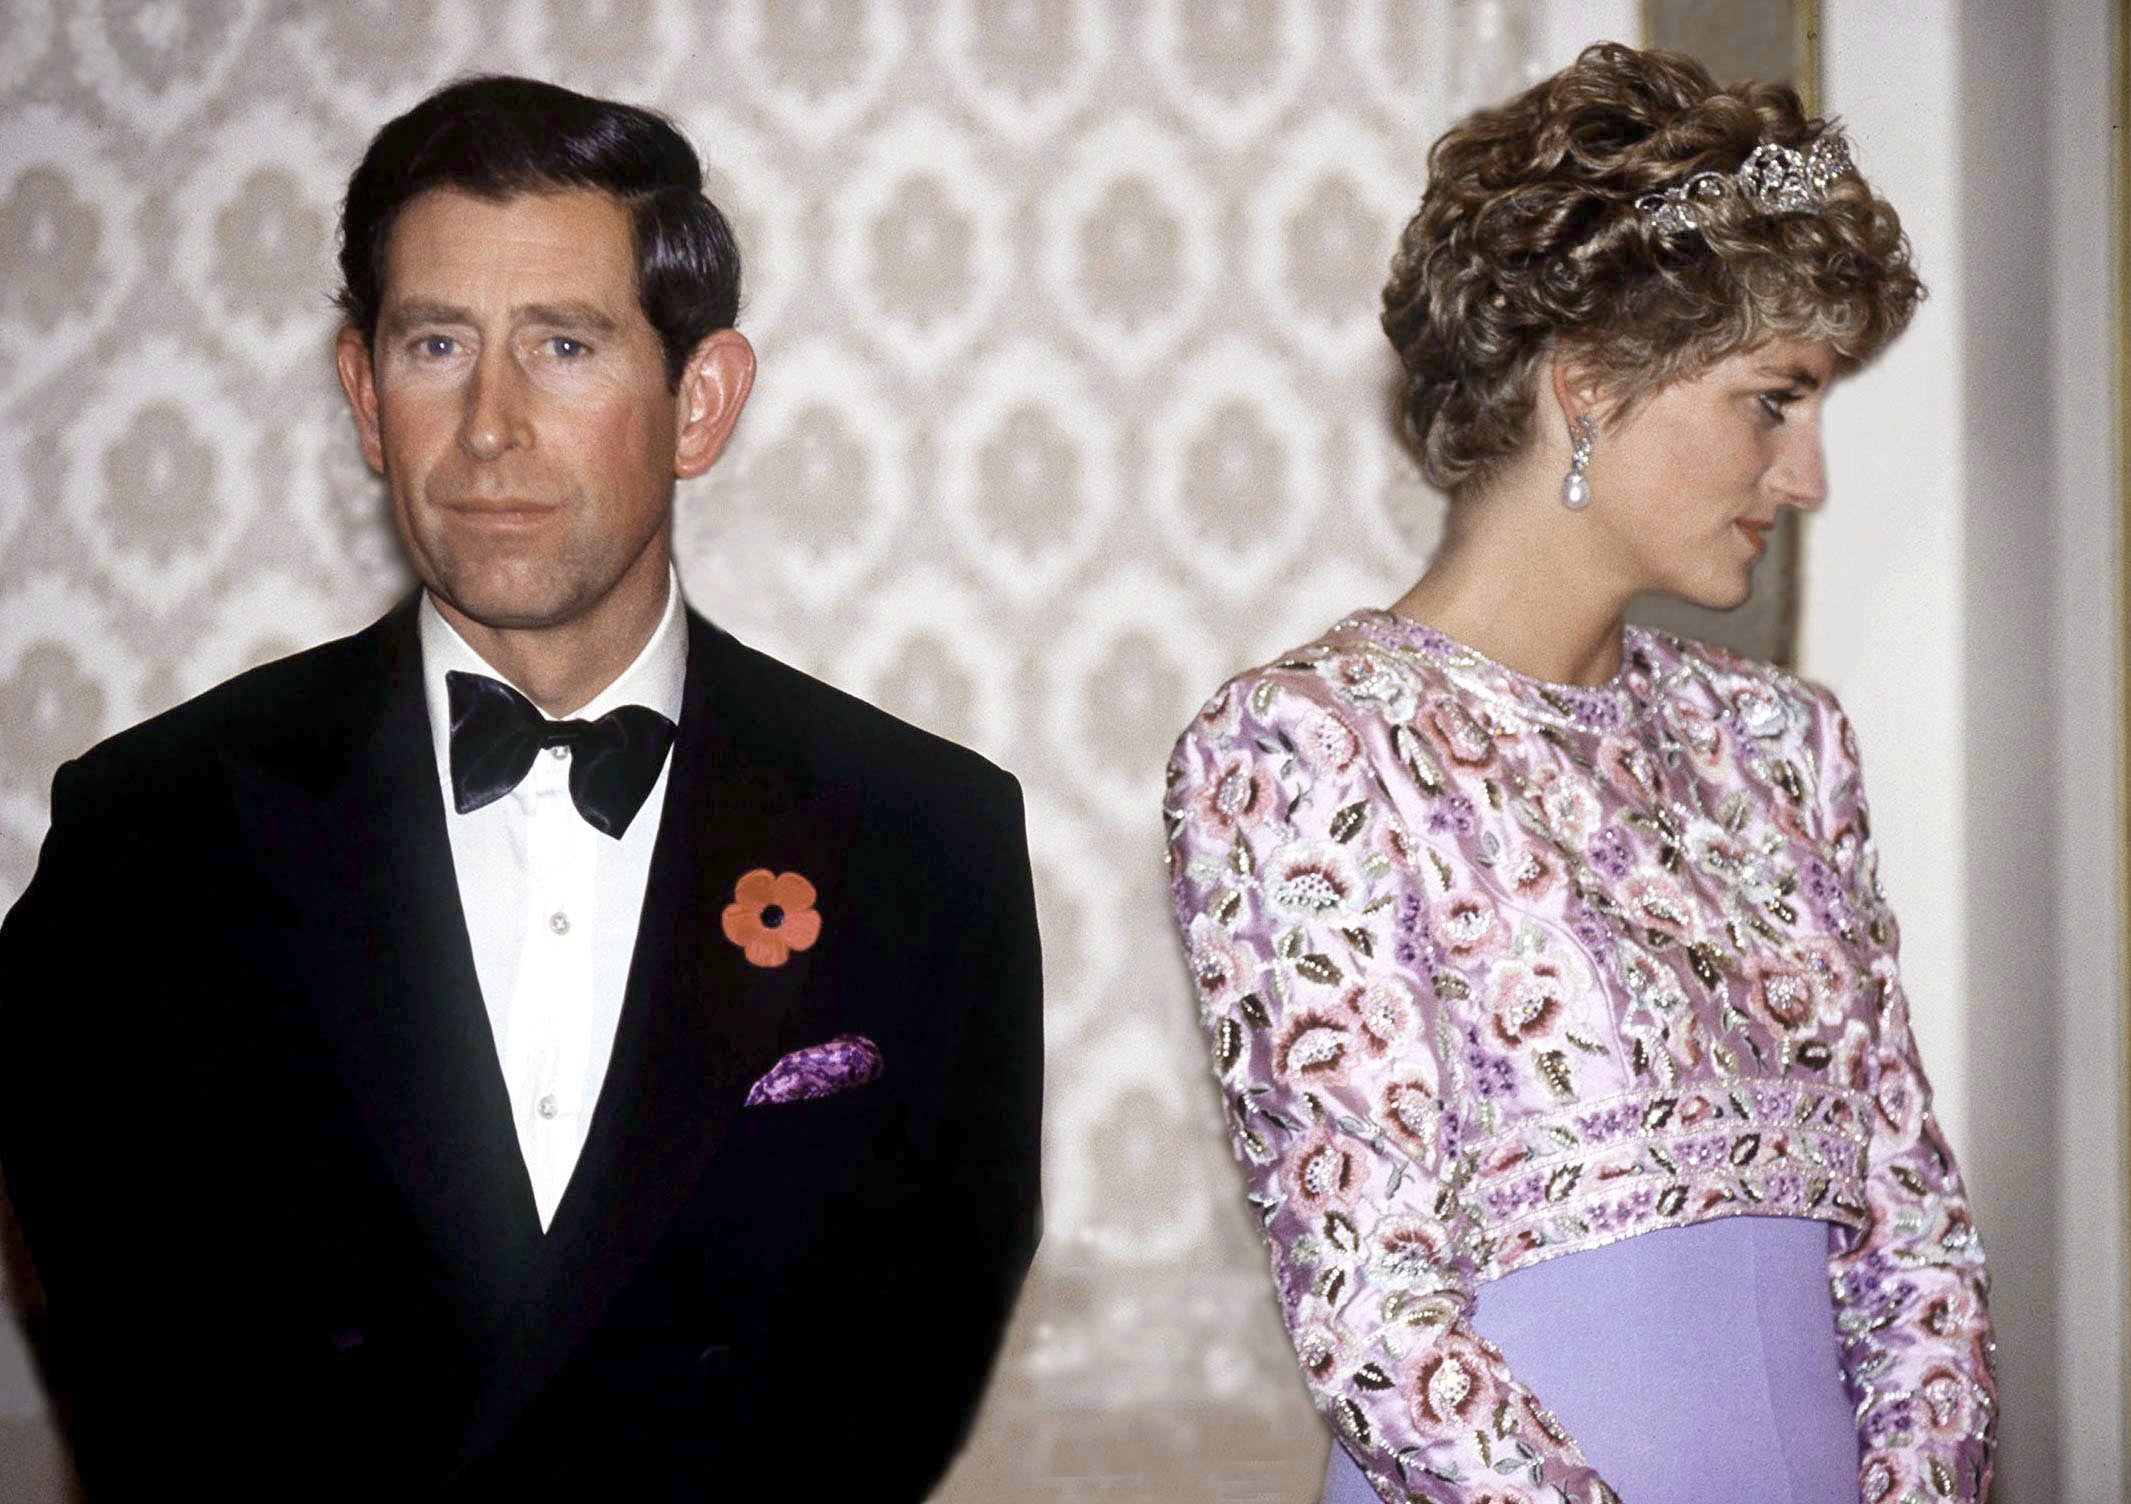 Prince Charles and Princess Diana in Seoul on November 3, 1992 | Photo: Getty Images